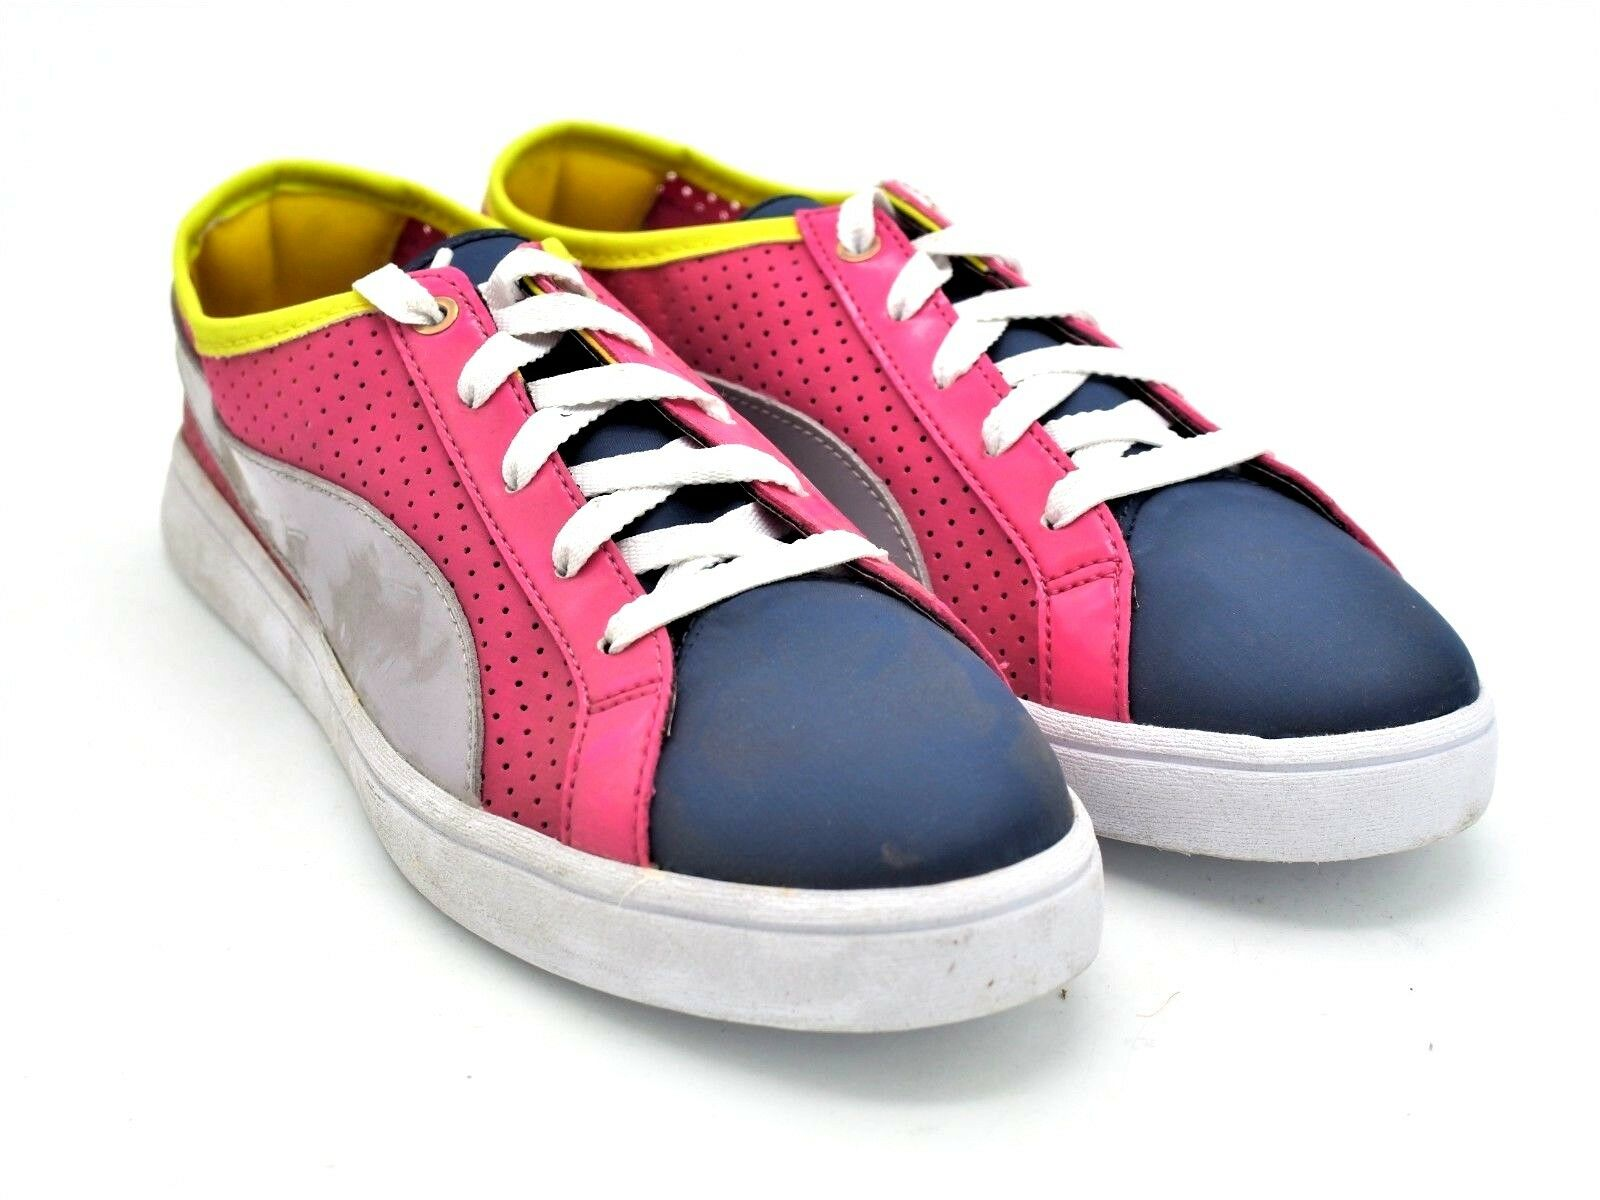 D1864 New Women's Puma Kai Lo - Perf Cabaret Low Top Sneakers Size 7.5 M